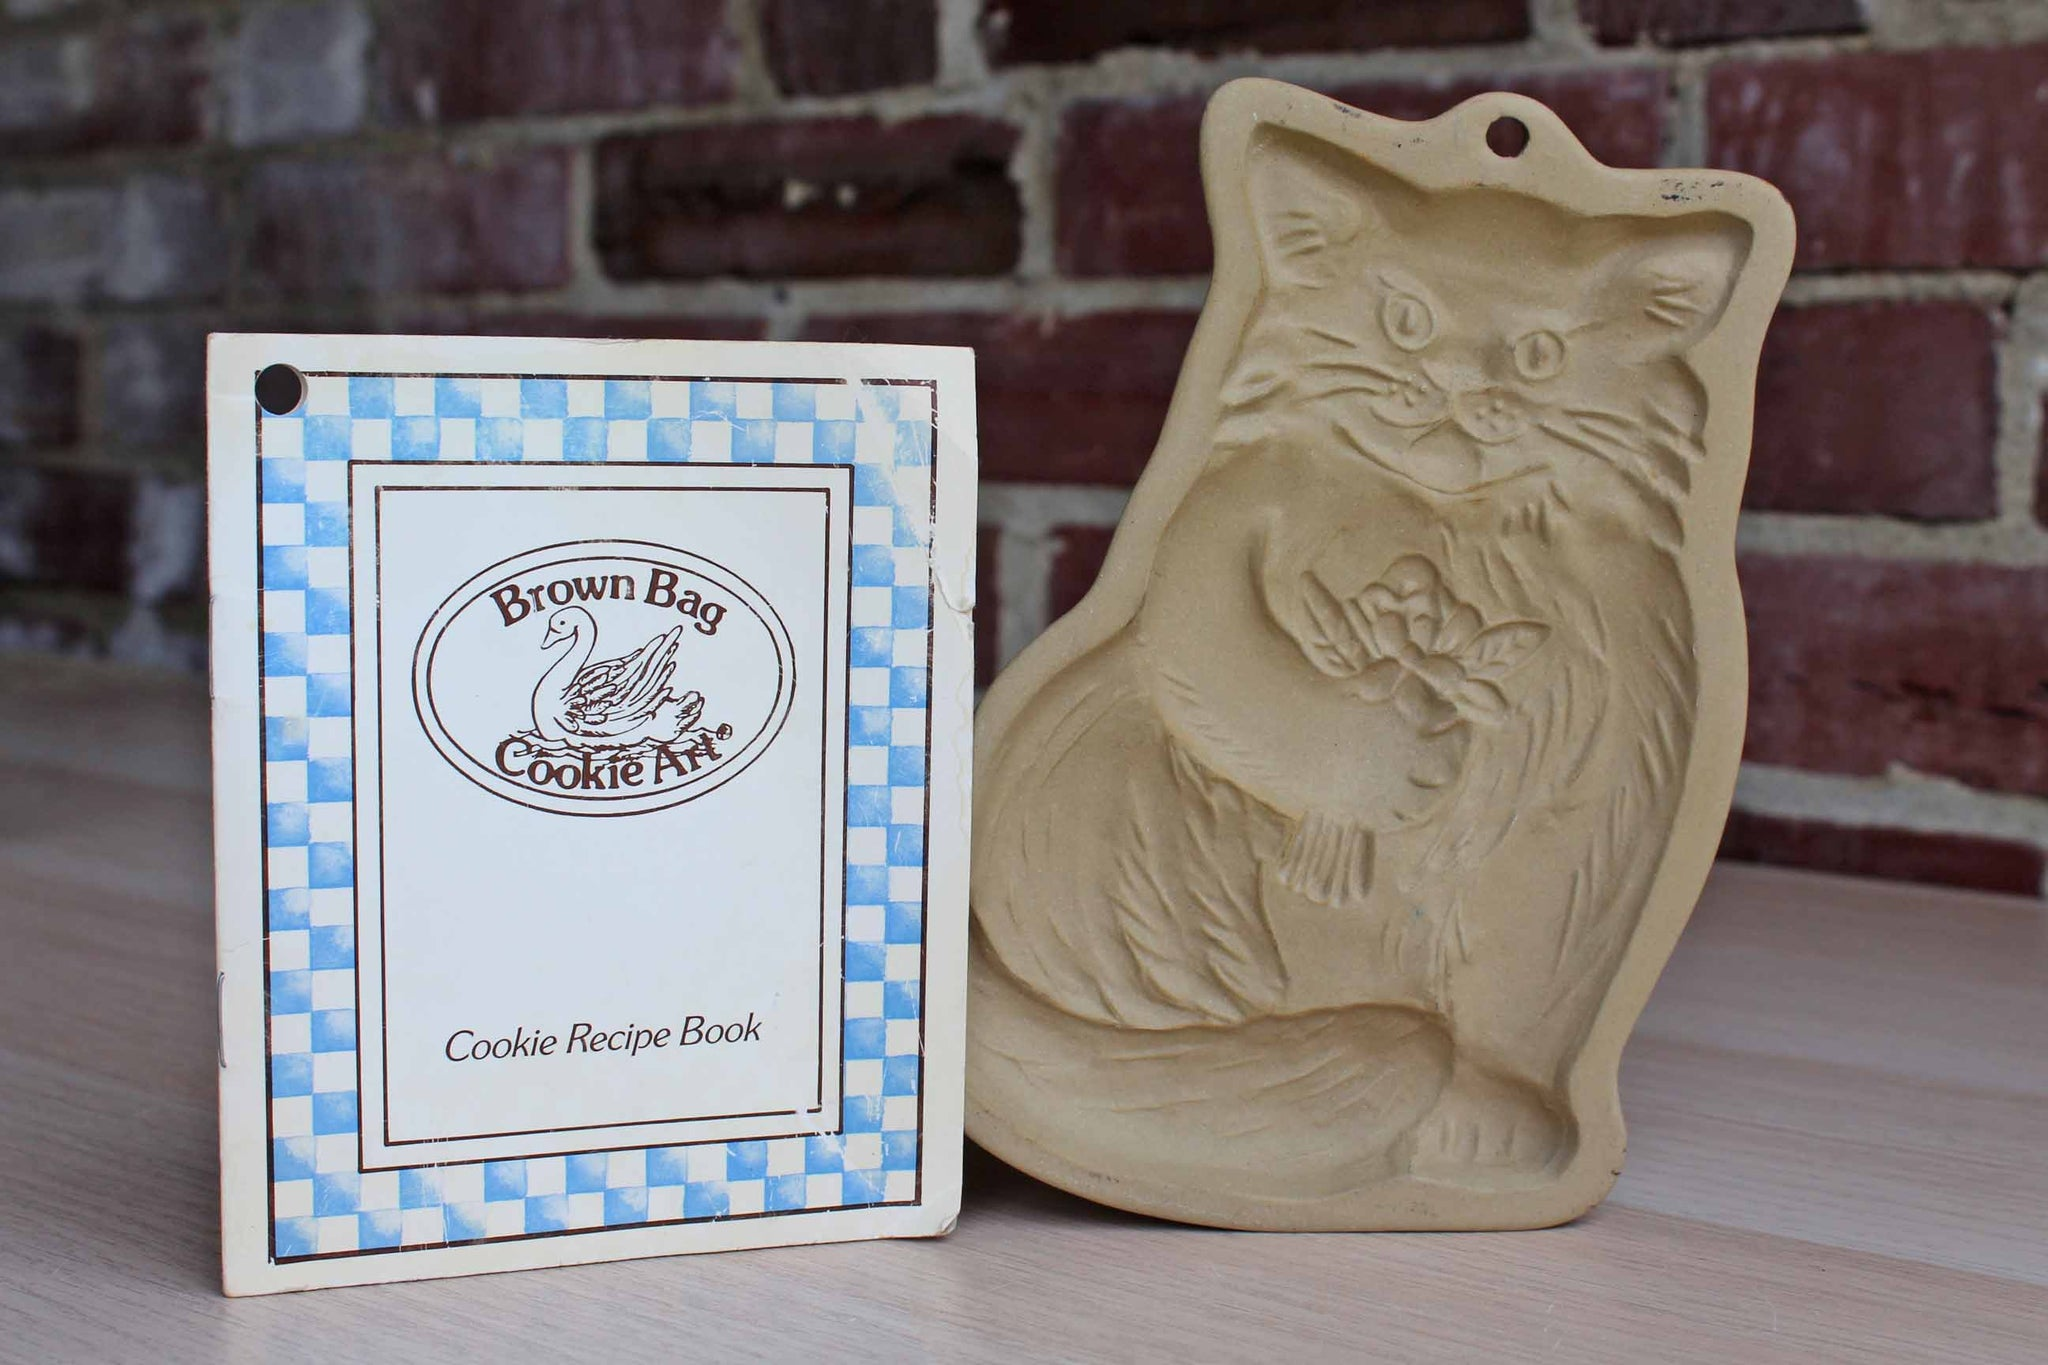 Brown Bag Cookie Art (New Hampshire, USA) Stoneware Cookie Mold of a Cat Holding Bouquet of Flowers